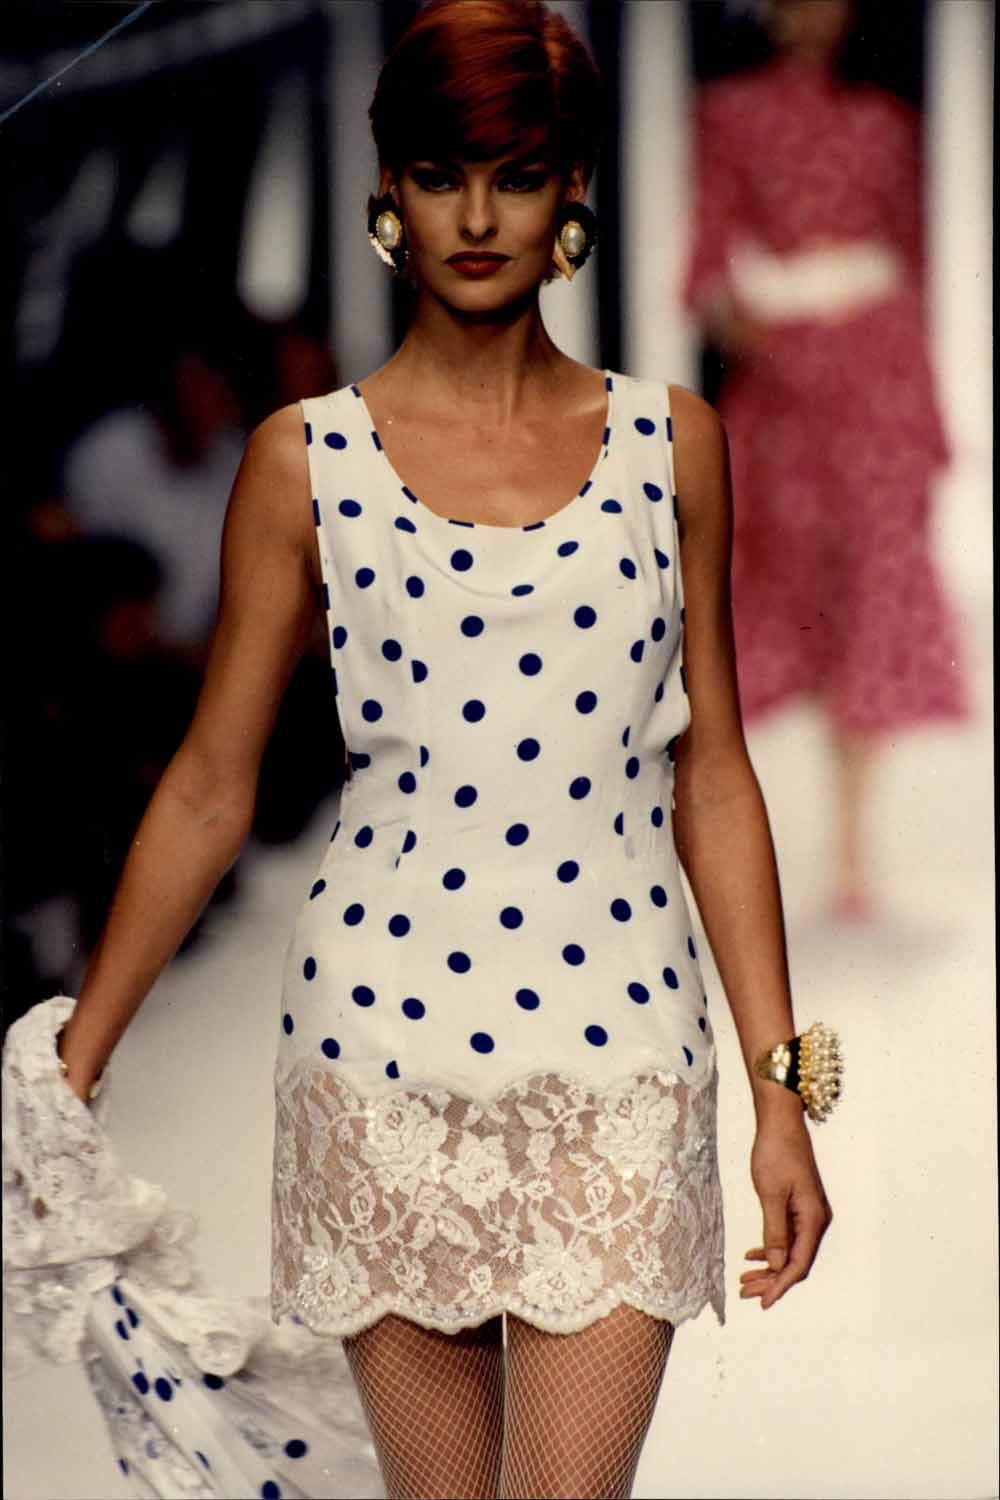 Best Models Ever: Supermodels From The 1950s To The 1990s